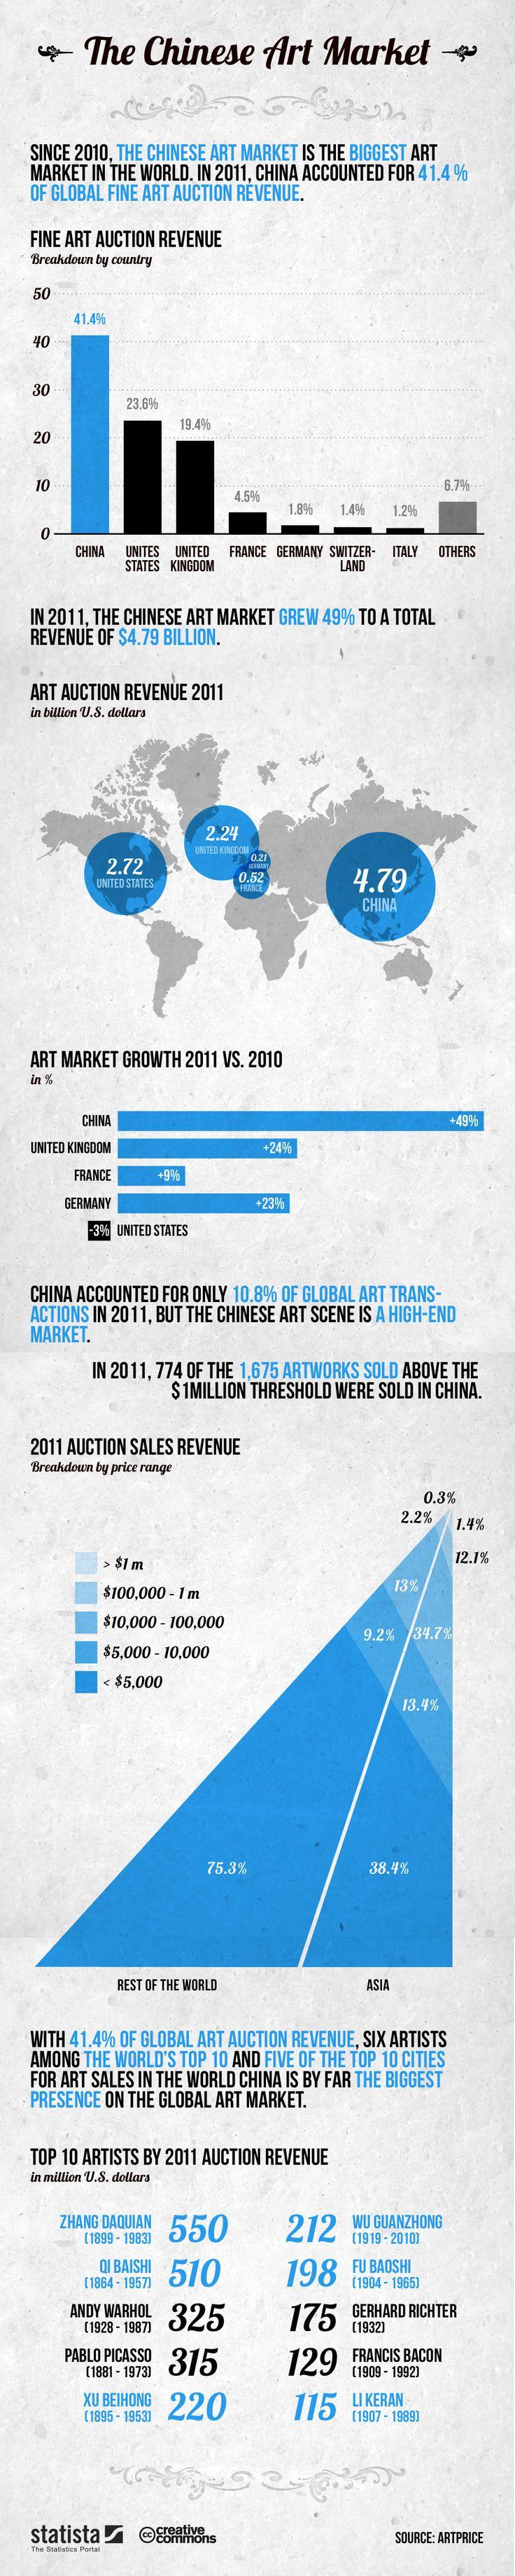 The Chinese Art Market is Dominating - Infographic